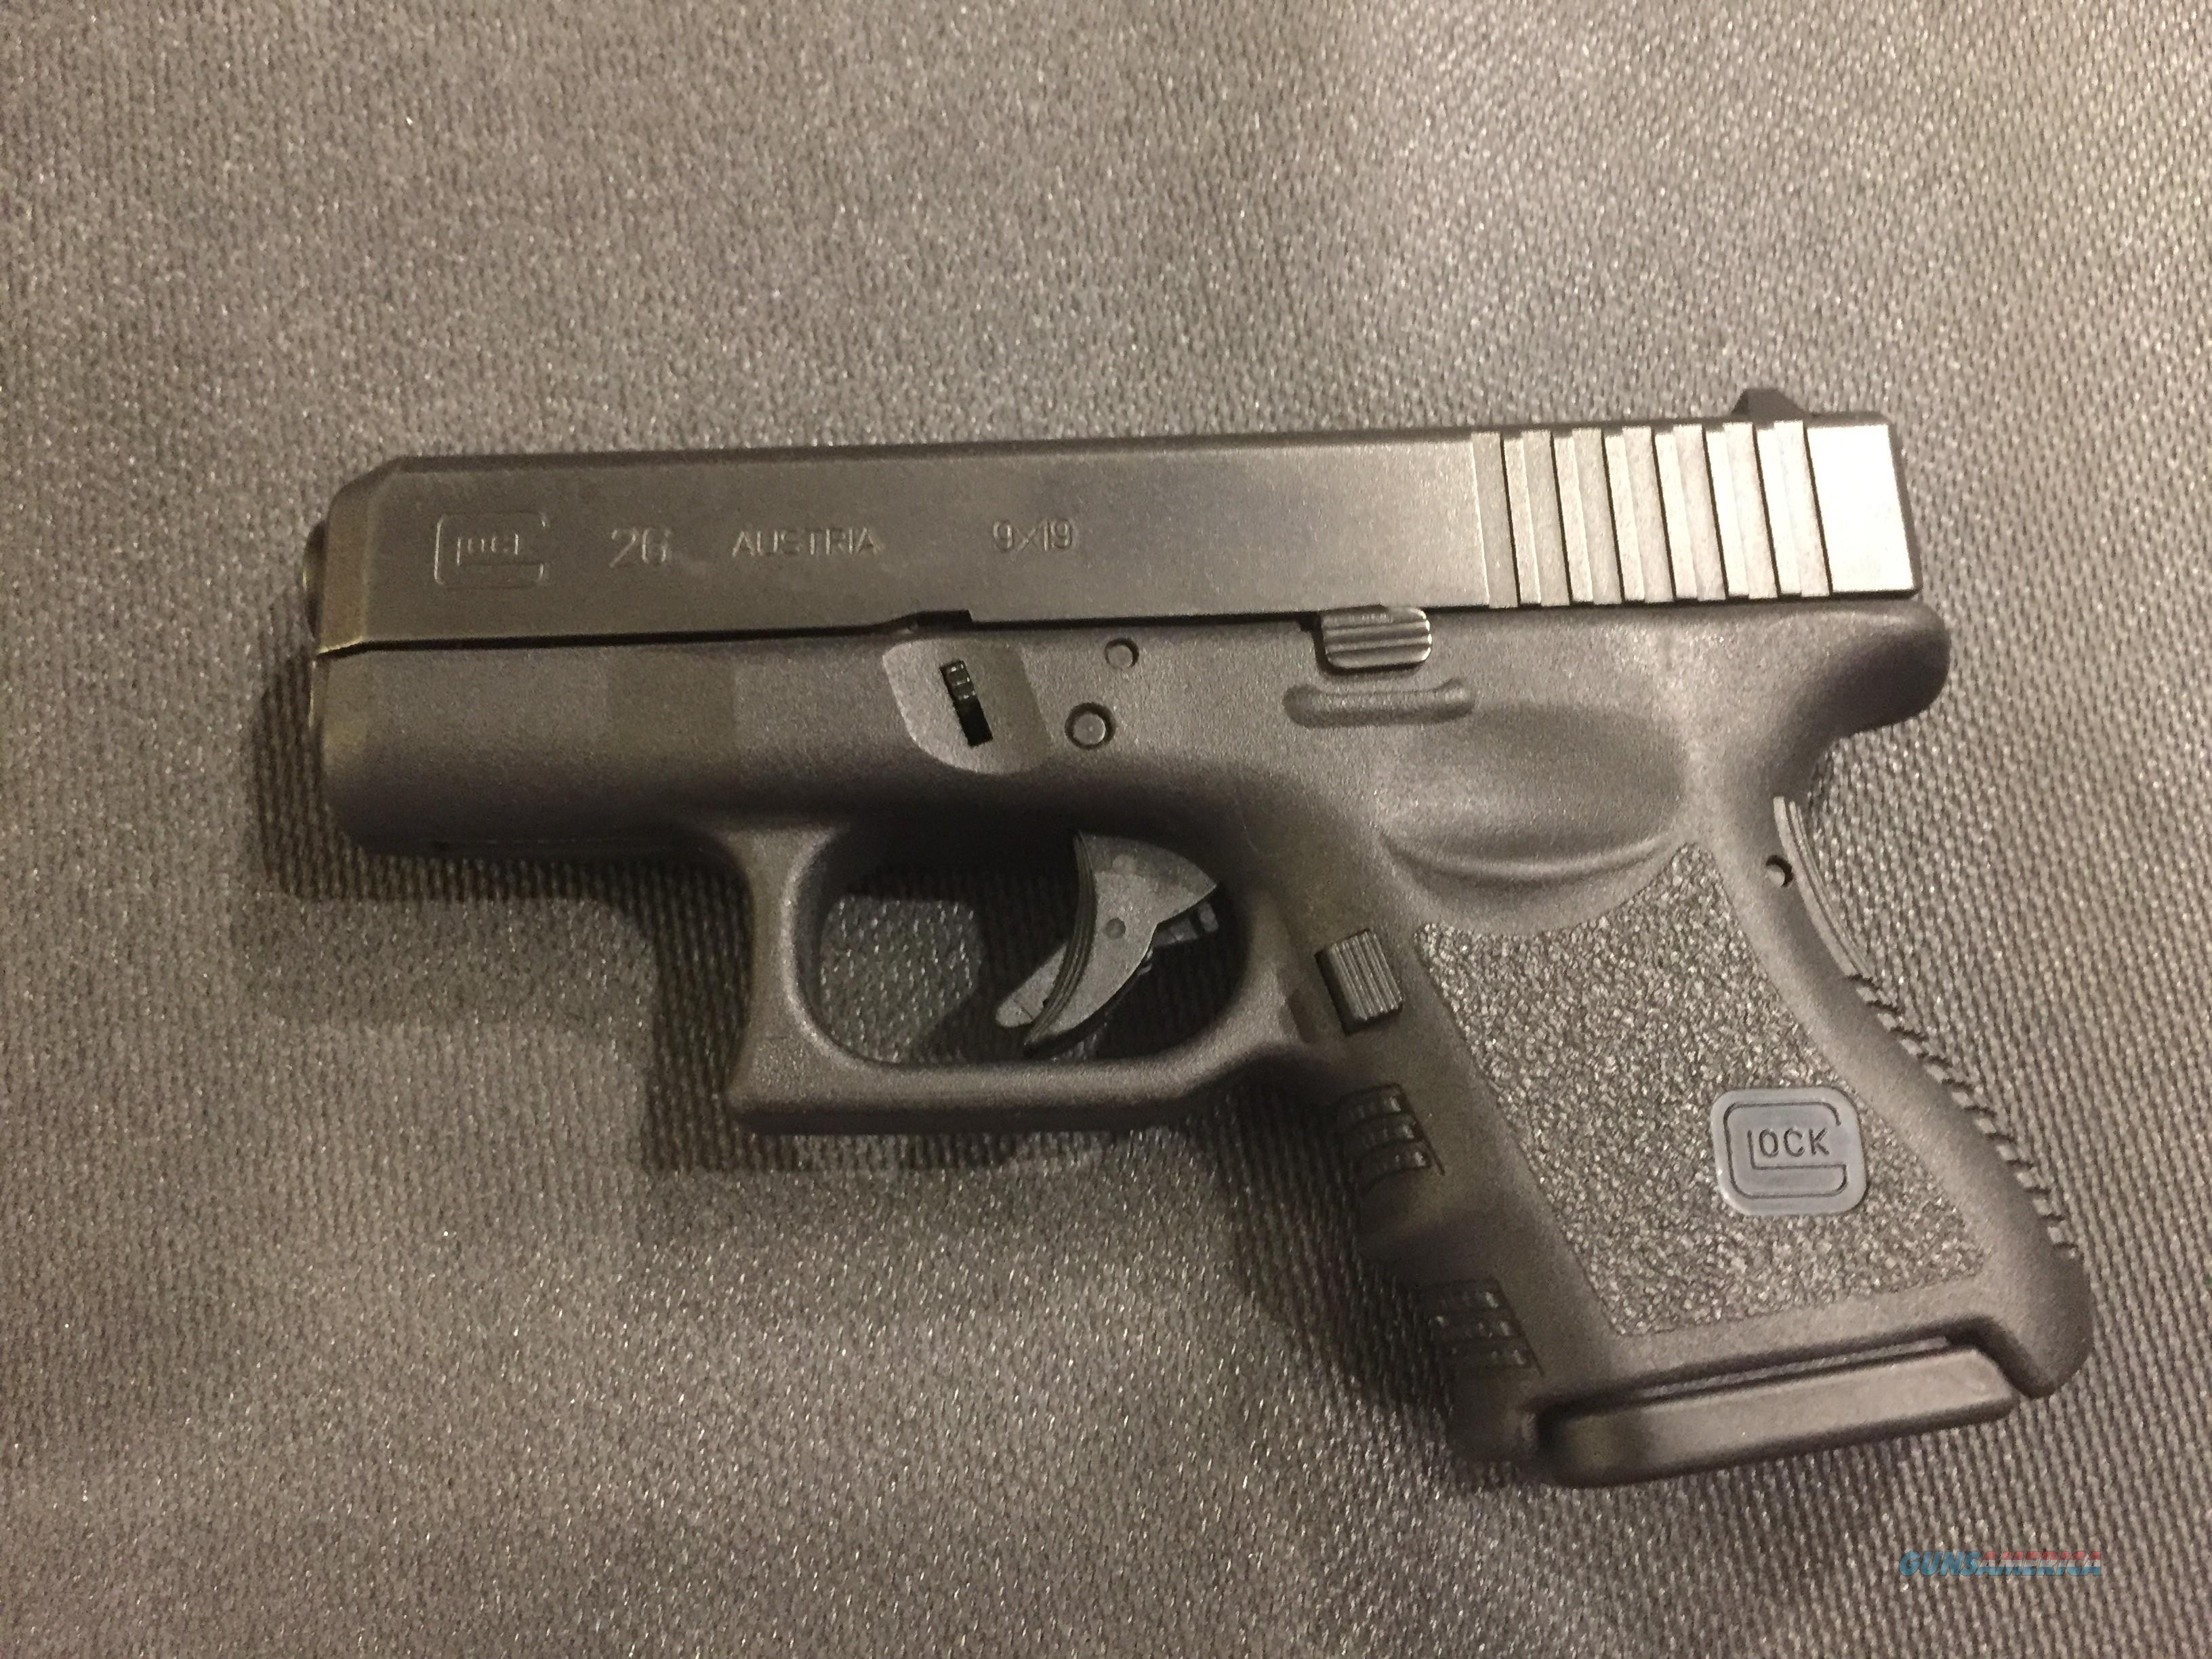 Glock 26 Gen 3 9mm sub compact in like new condition G26 in original hard case (no card fees added)  Guns > Pistols > Glock Pistols > 26/27